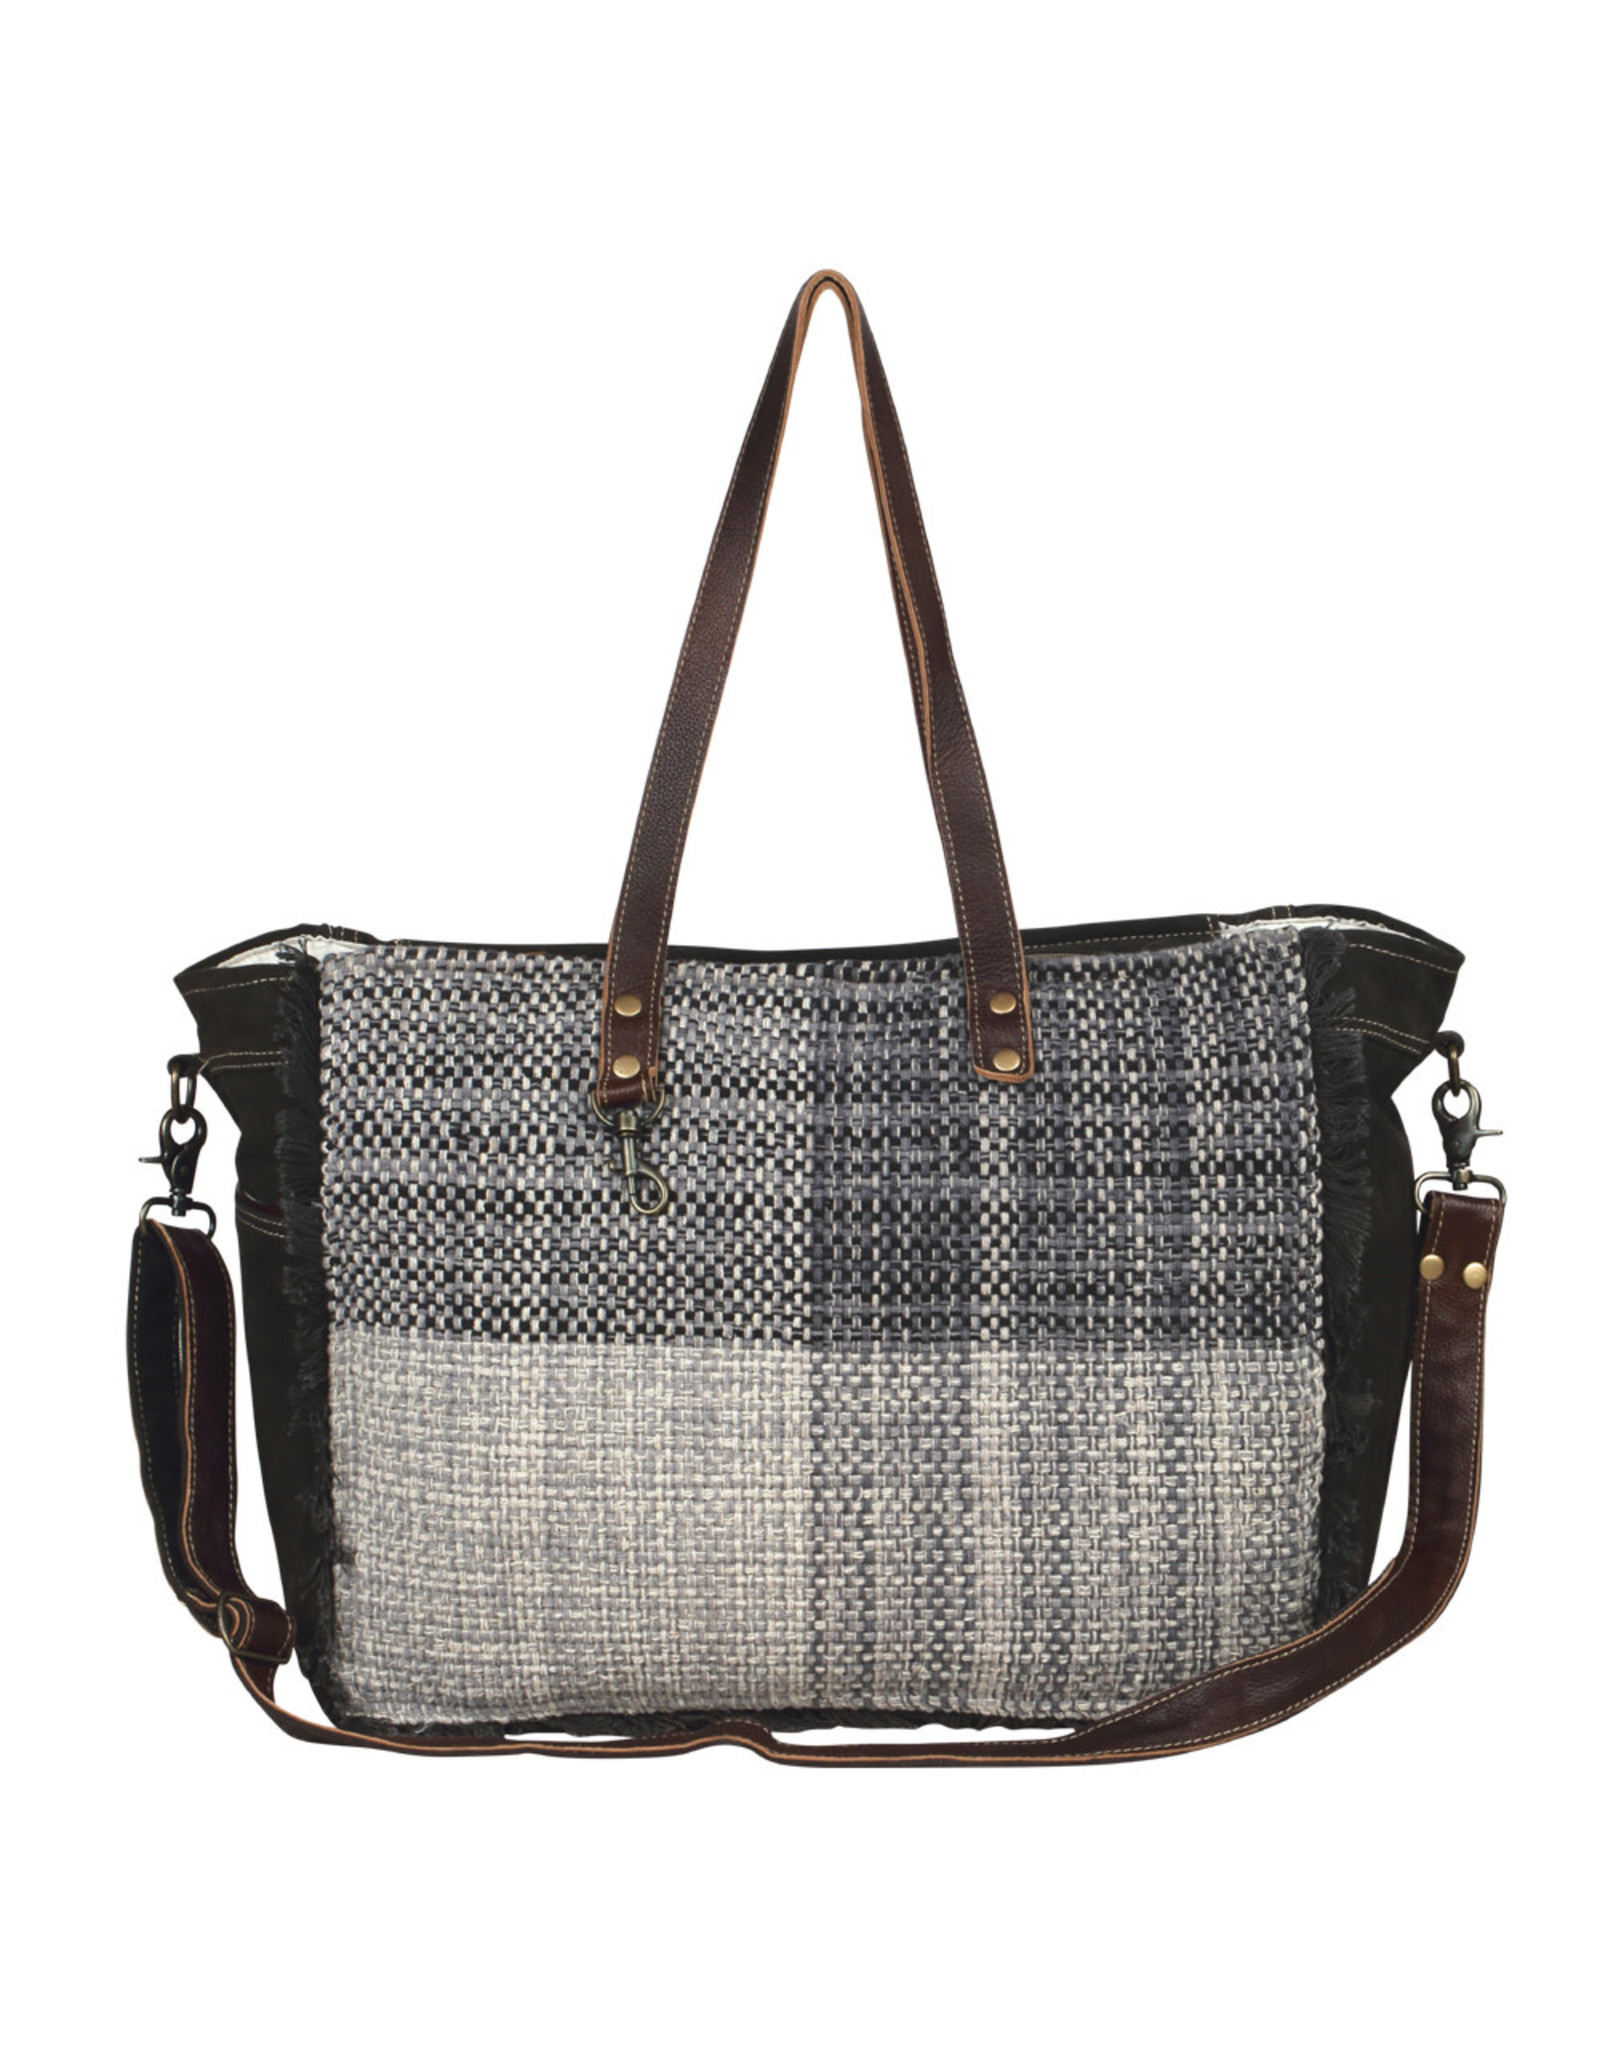 S 2090 Ought To Weekender Bag You'll receive email and feed alerts when new items arrive. the handbag store